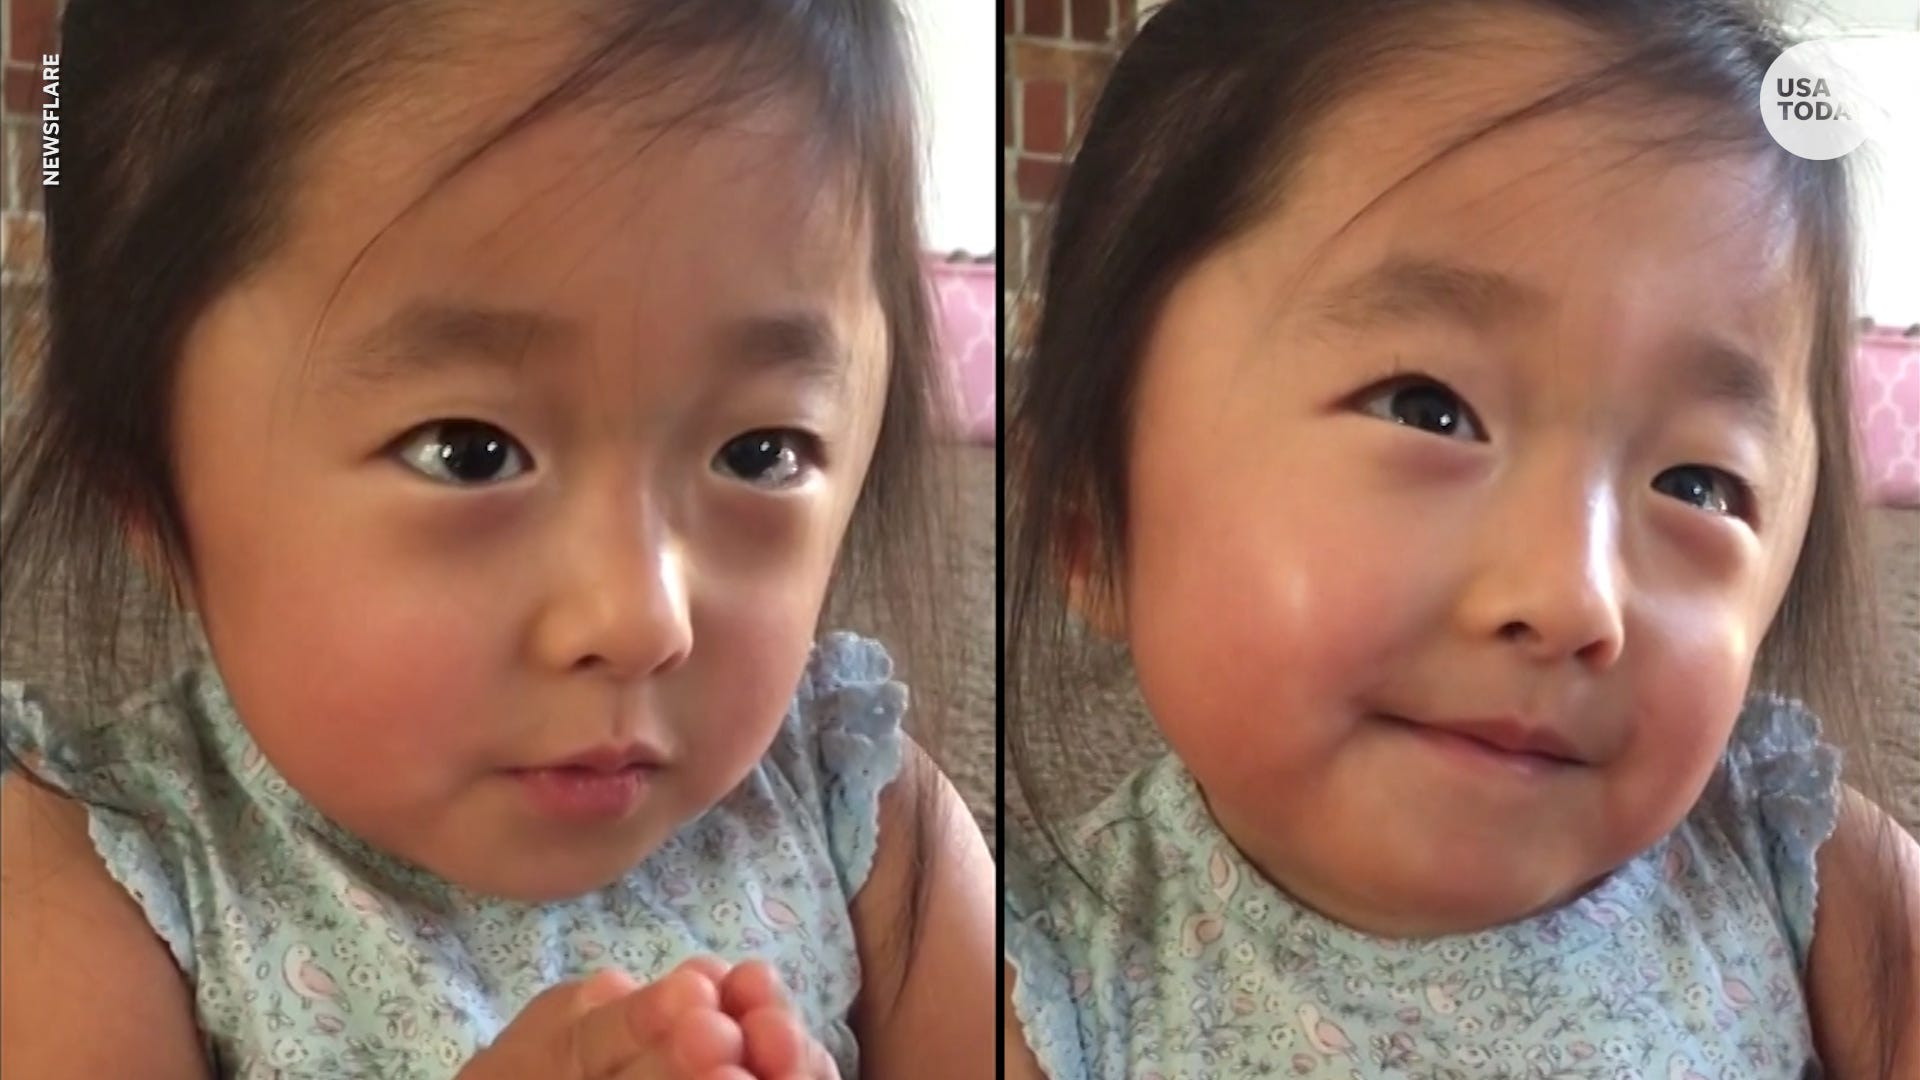 Sweet girl tells adoptive mom her  heart fell in love  the first time they met